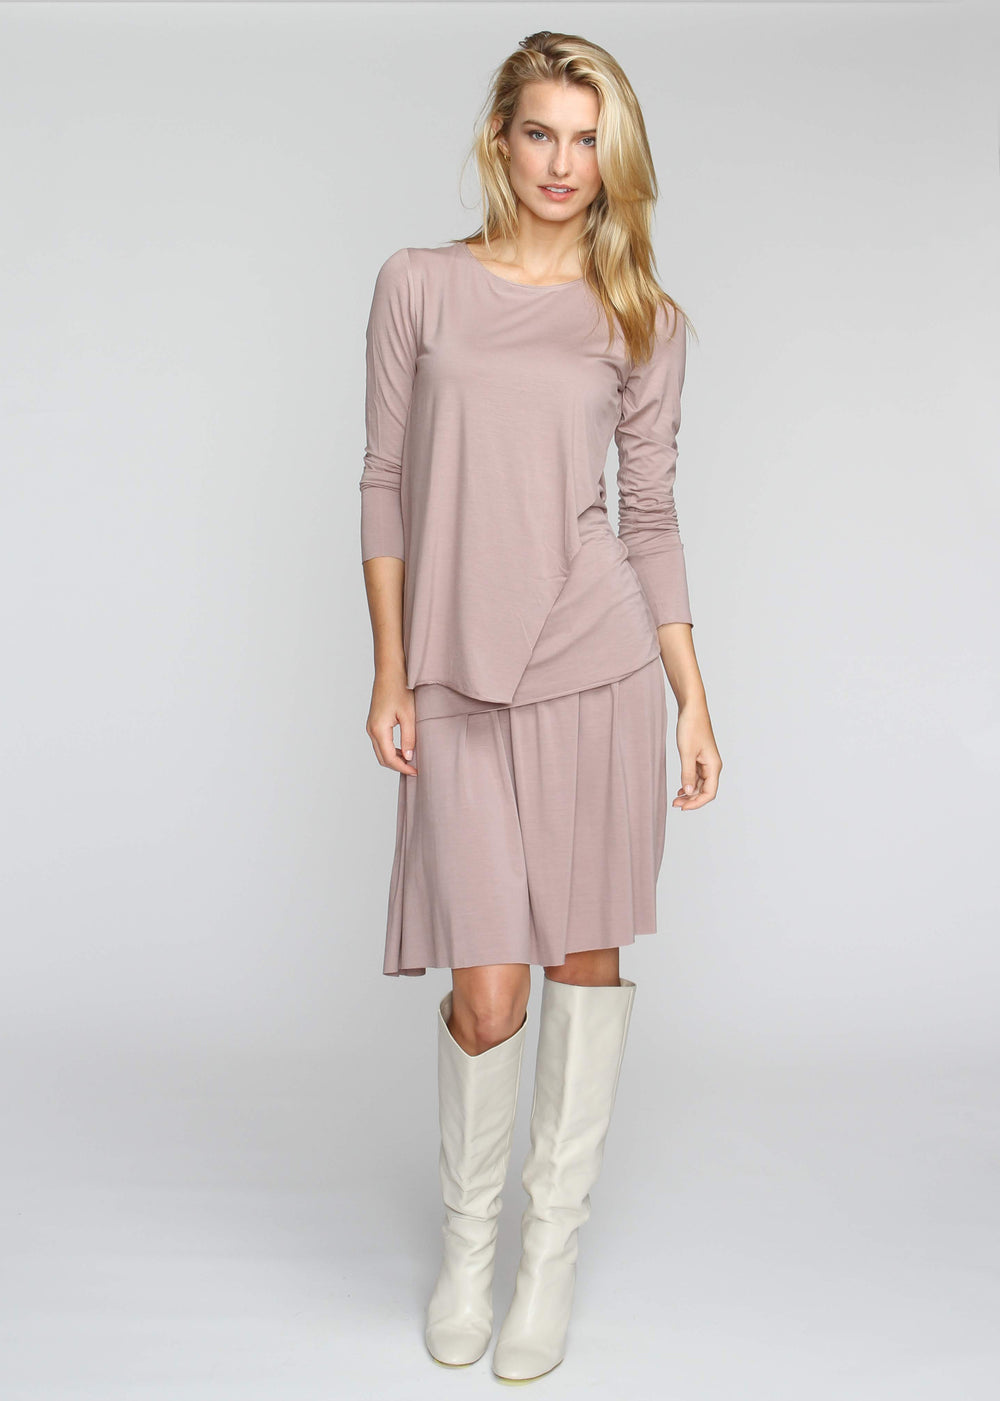 Drape T - Taupe - The Frock NYC